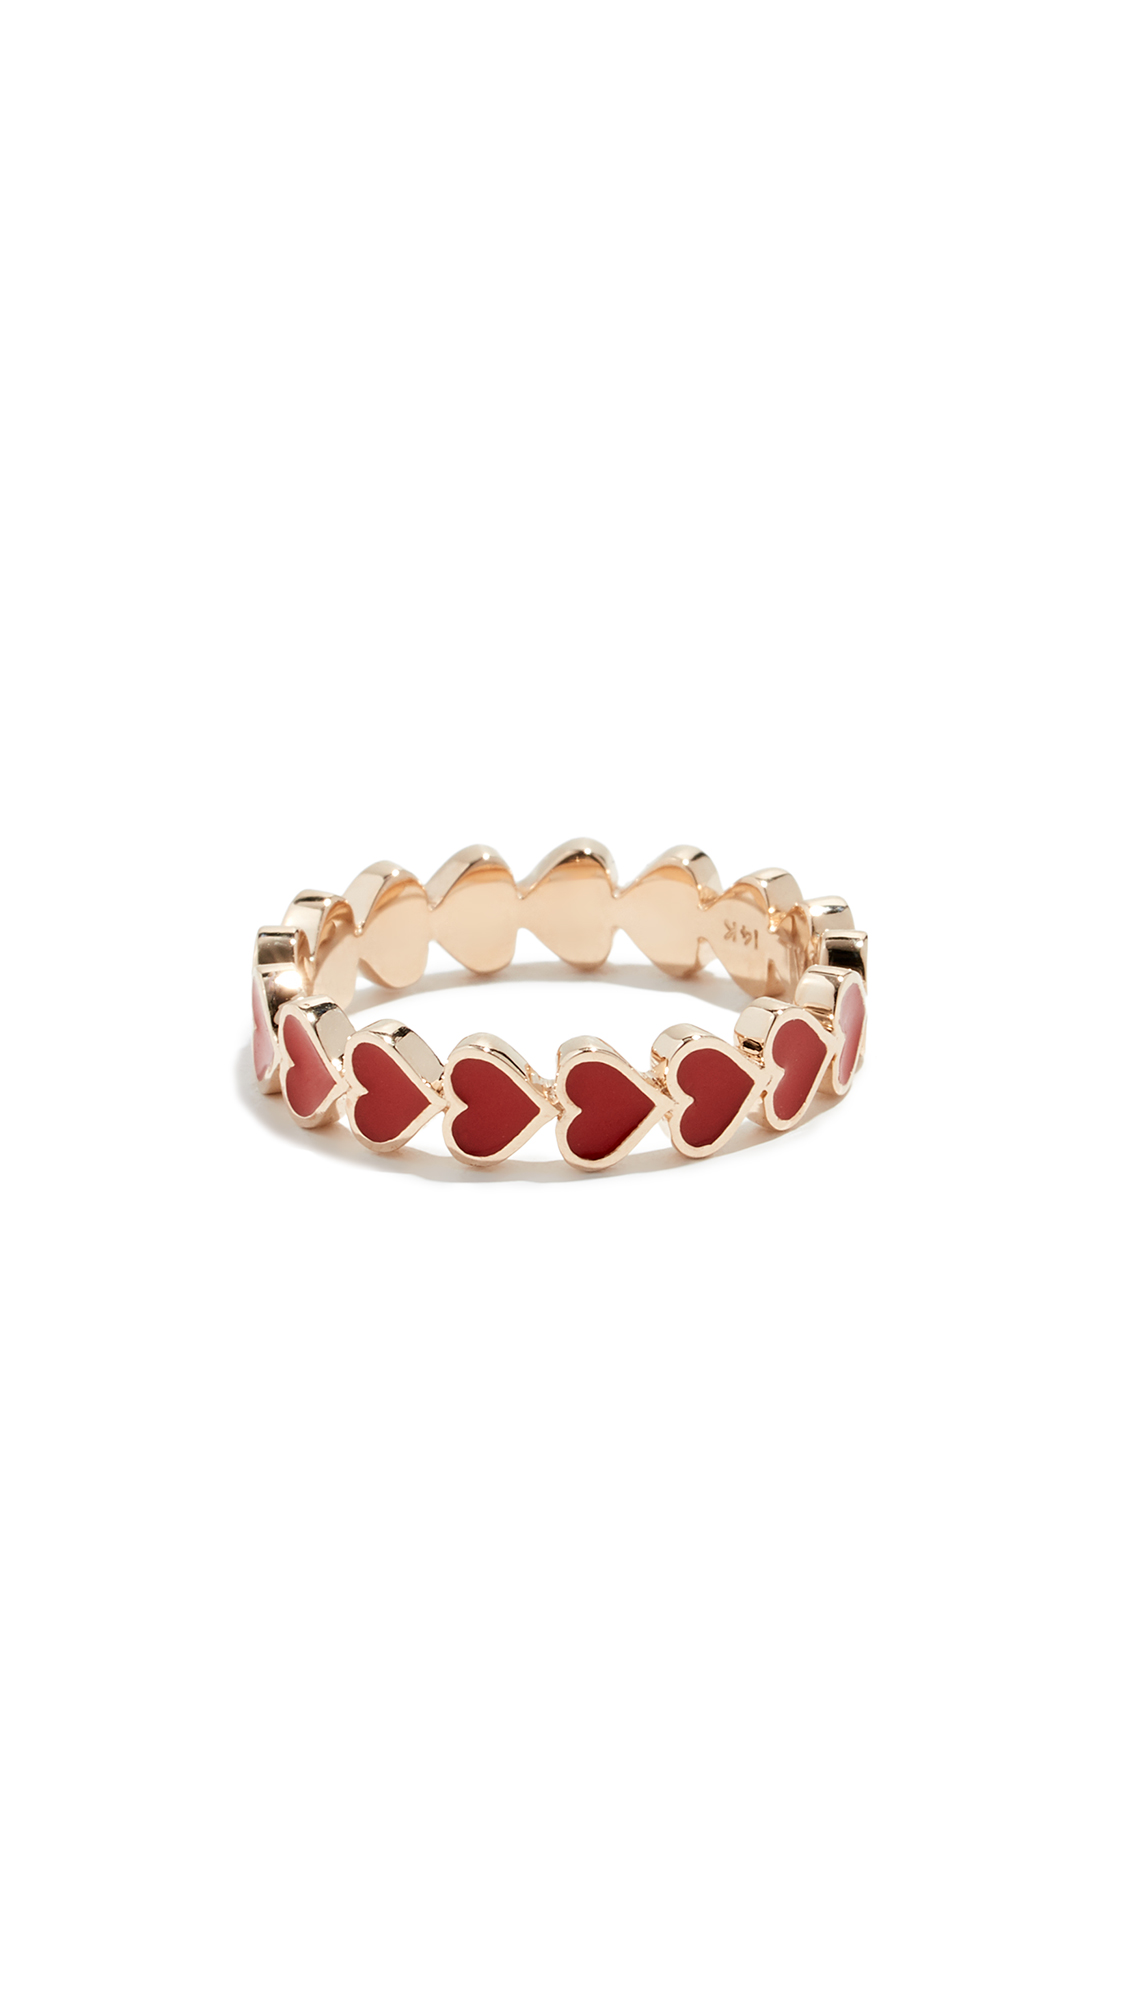 Alison Lou 14K HEART STACK RING